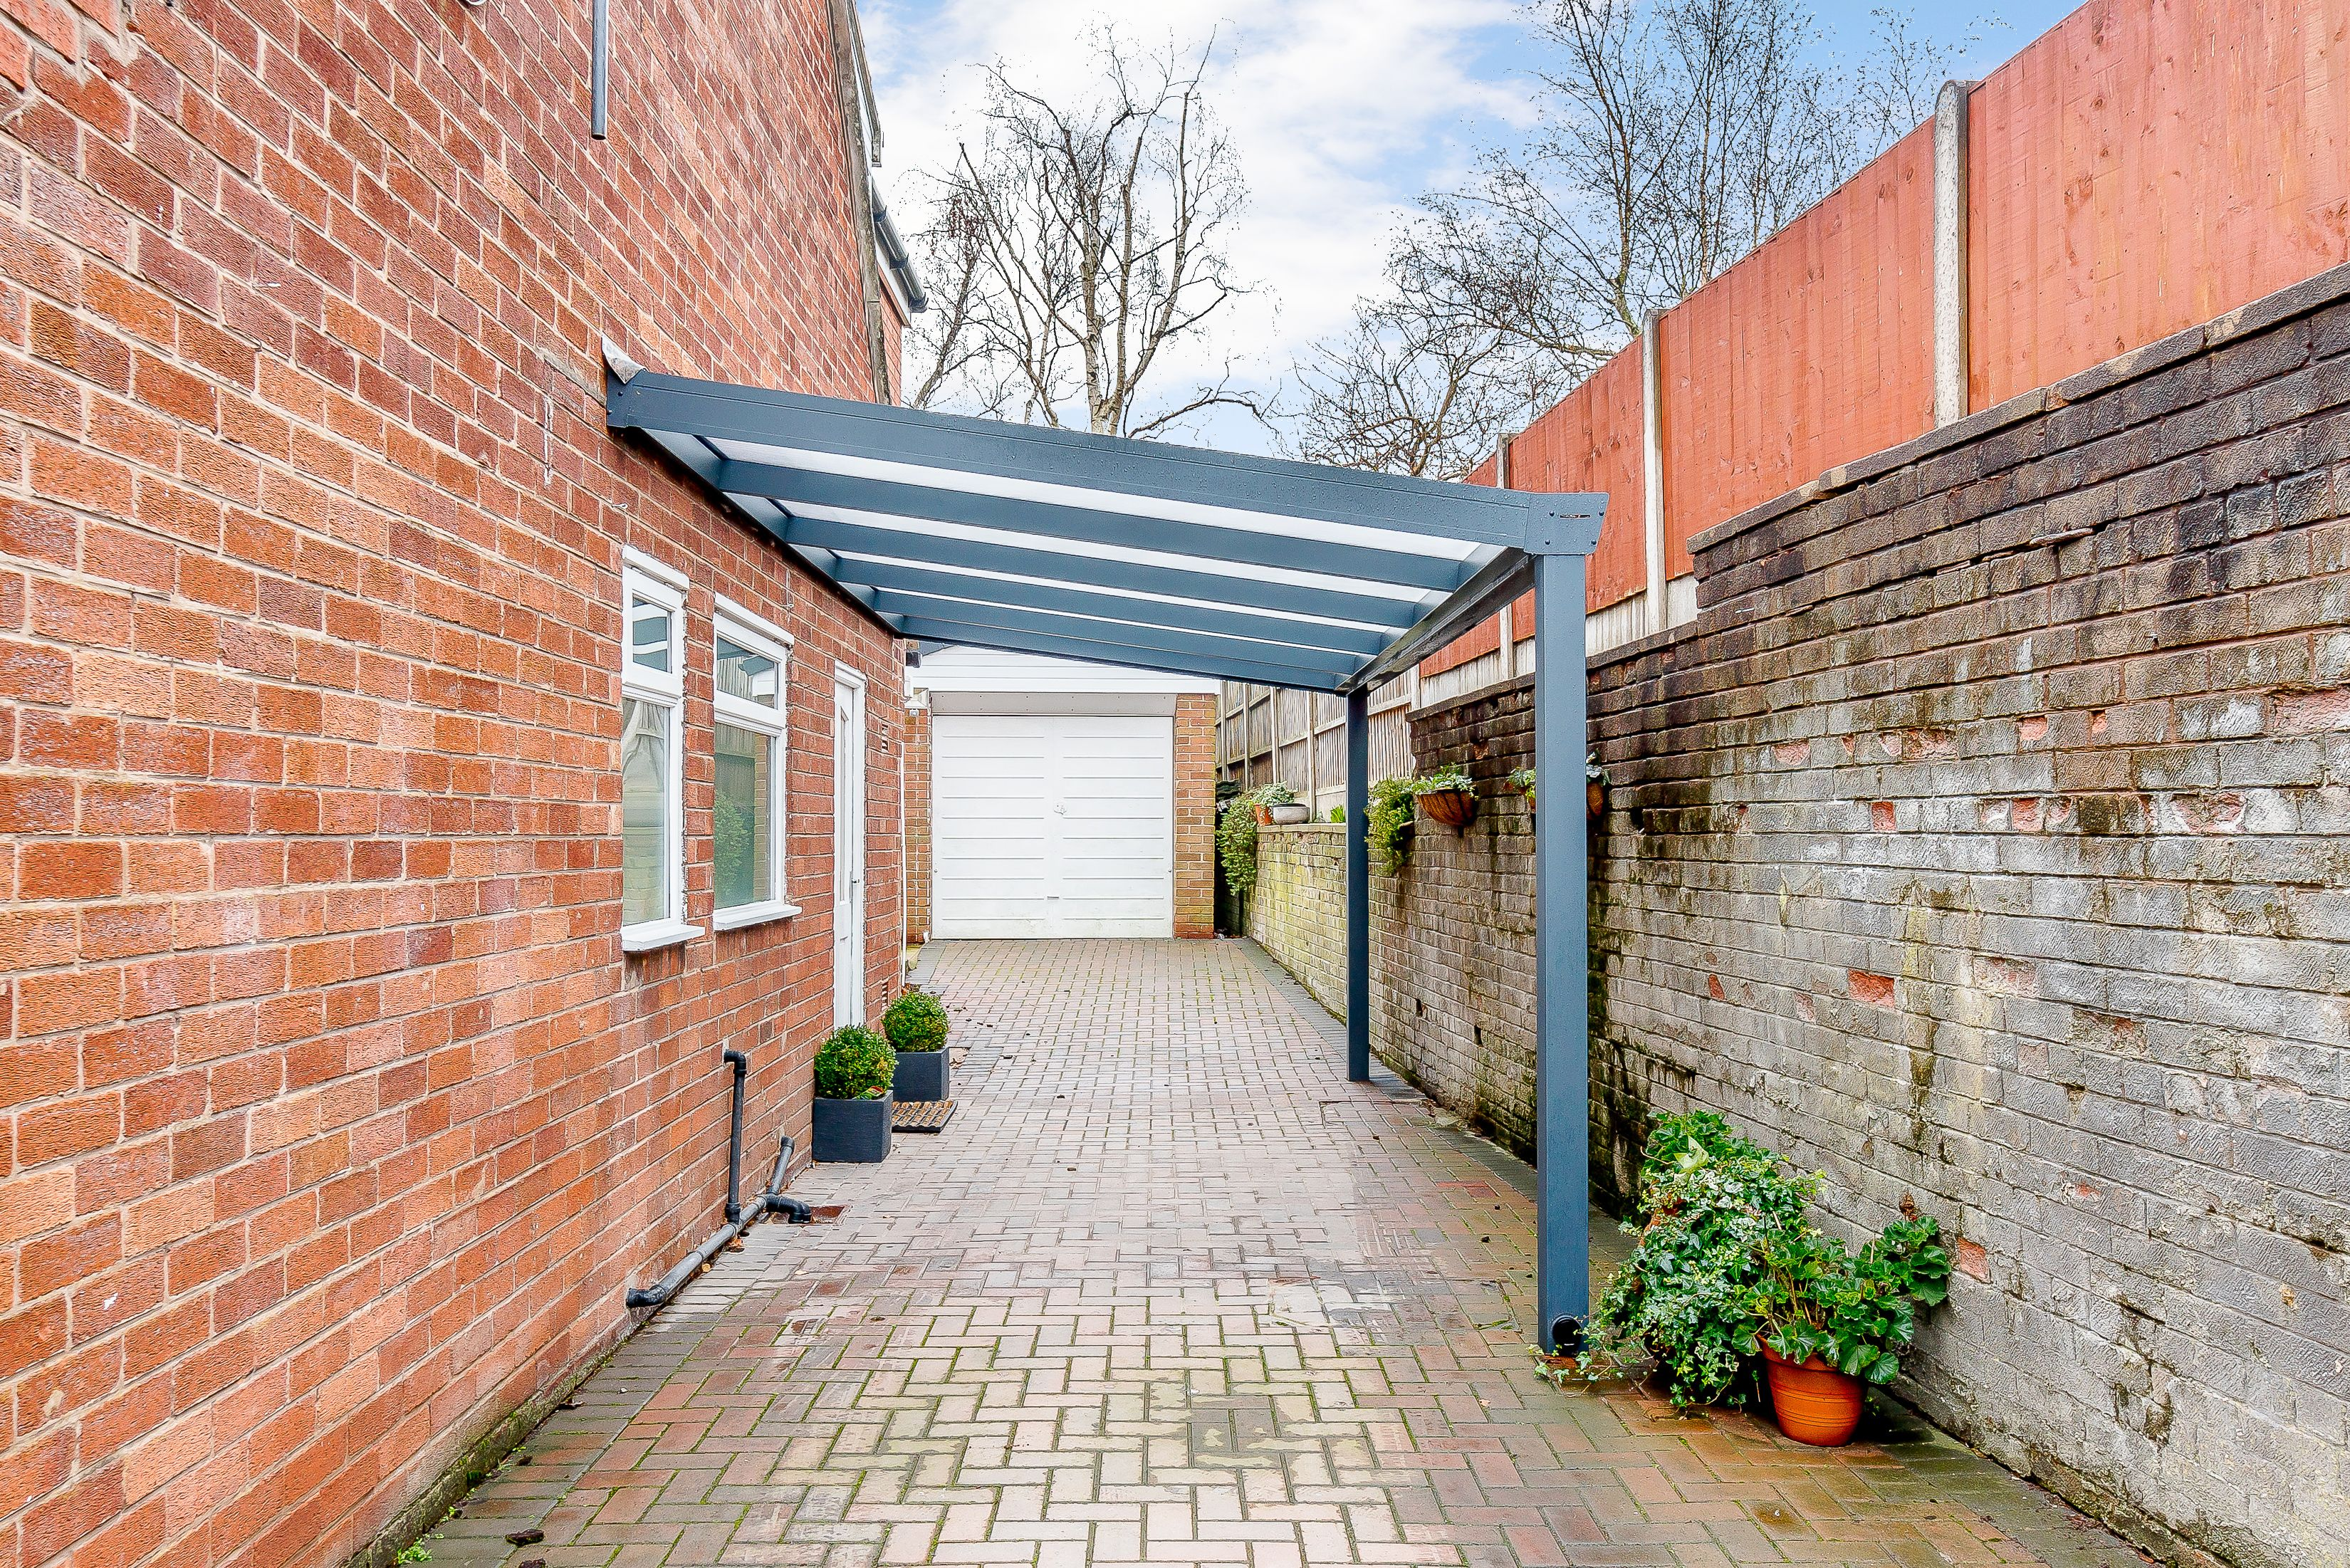 Pin by SunSpaces on CASE STUDY Carport in Cheshire